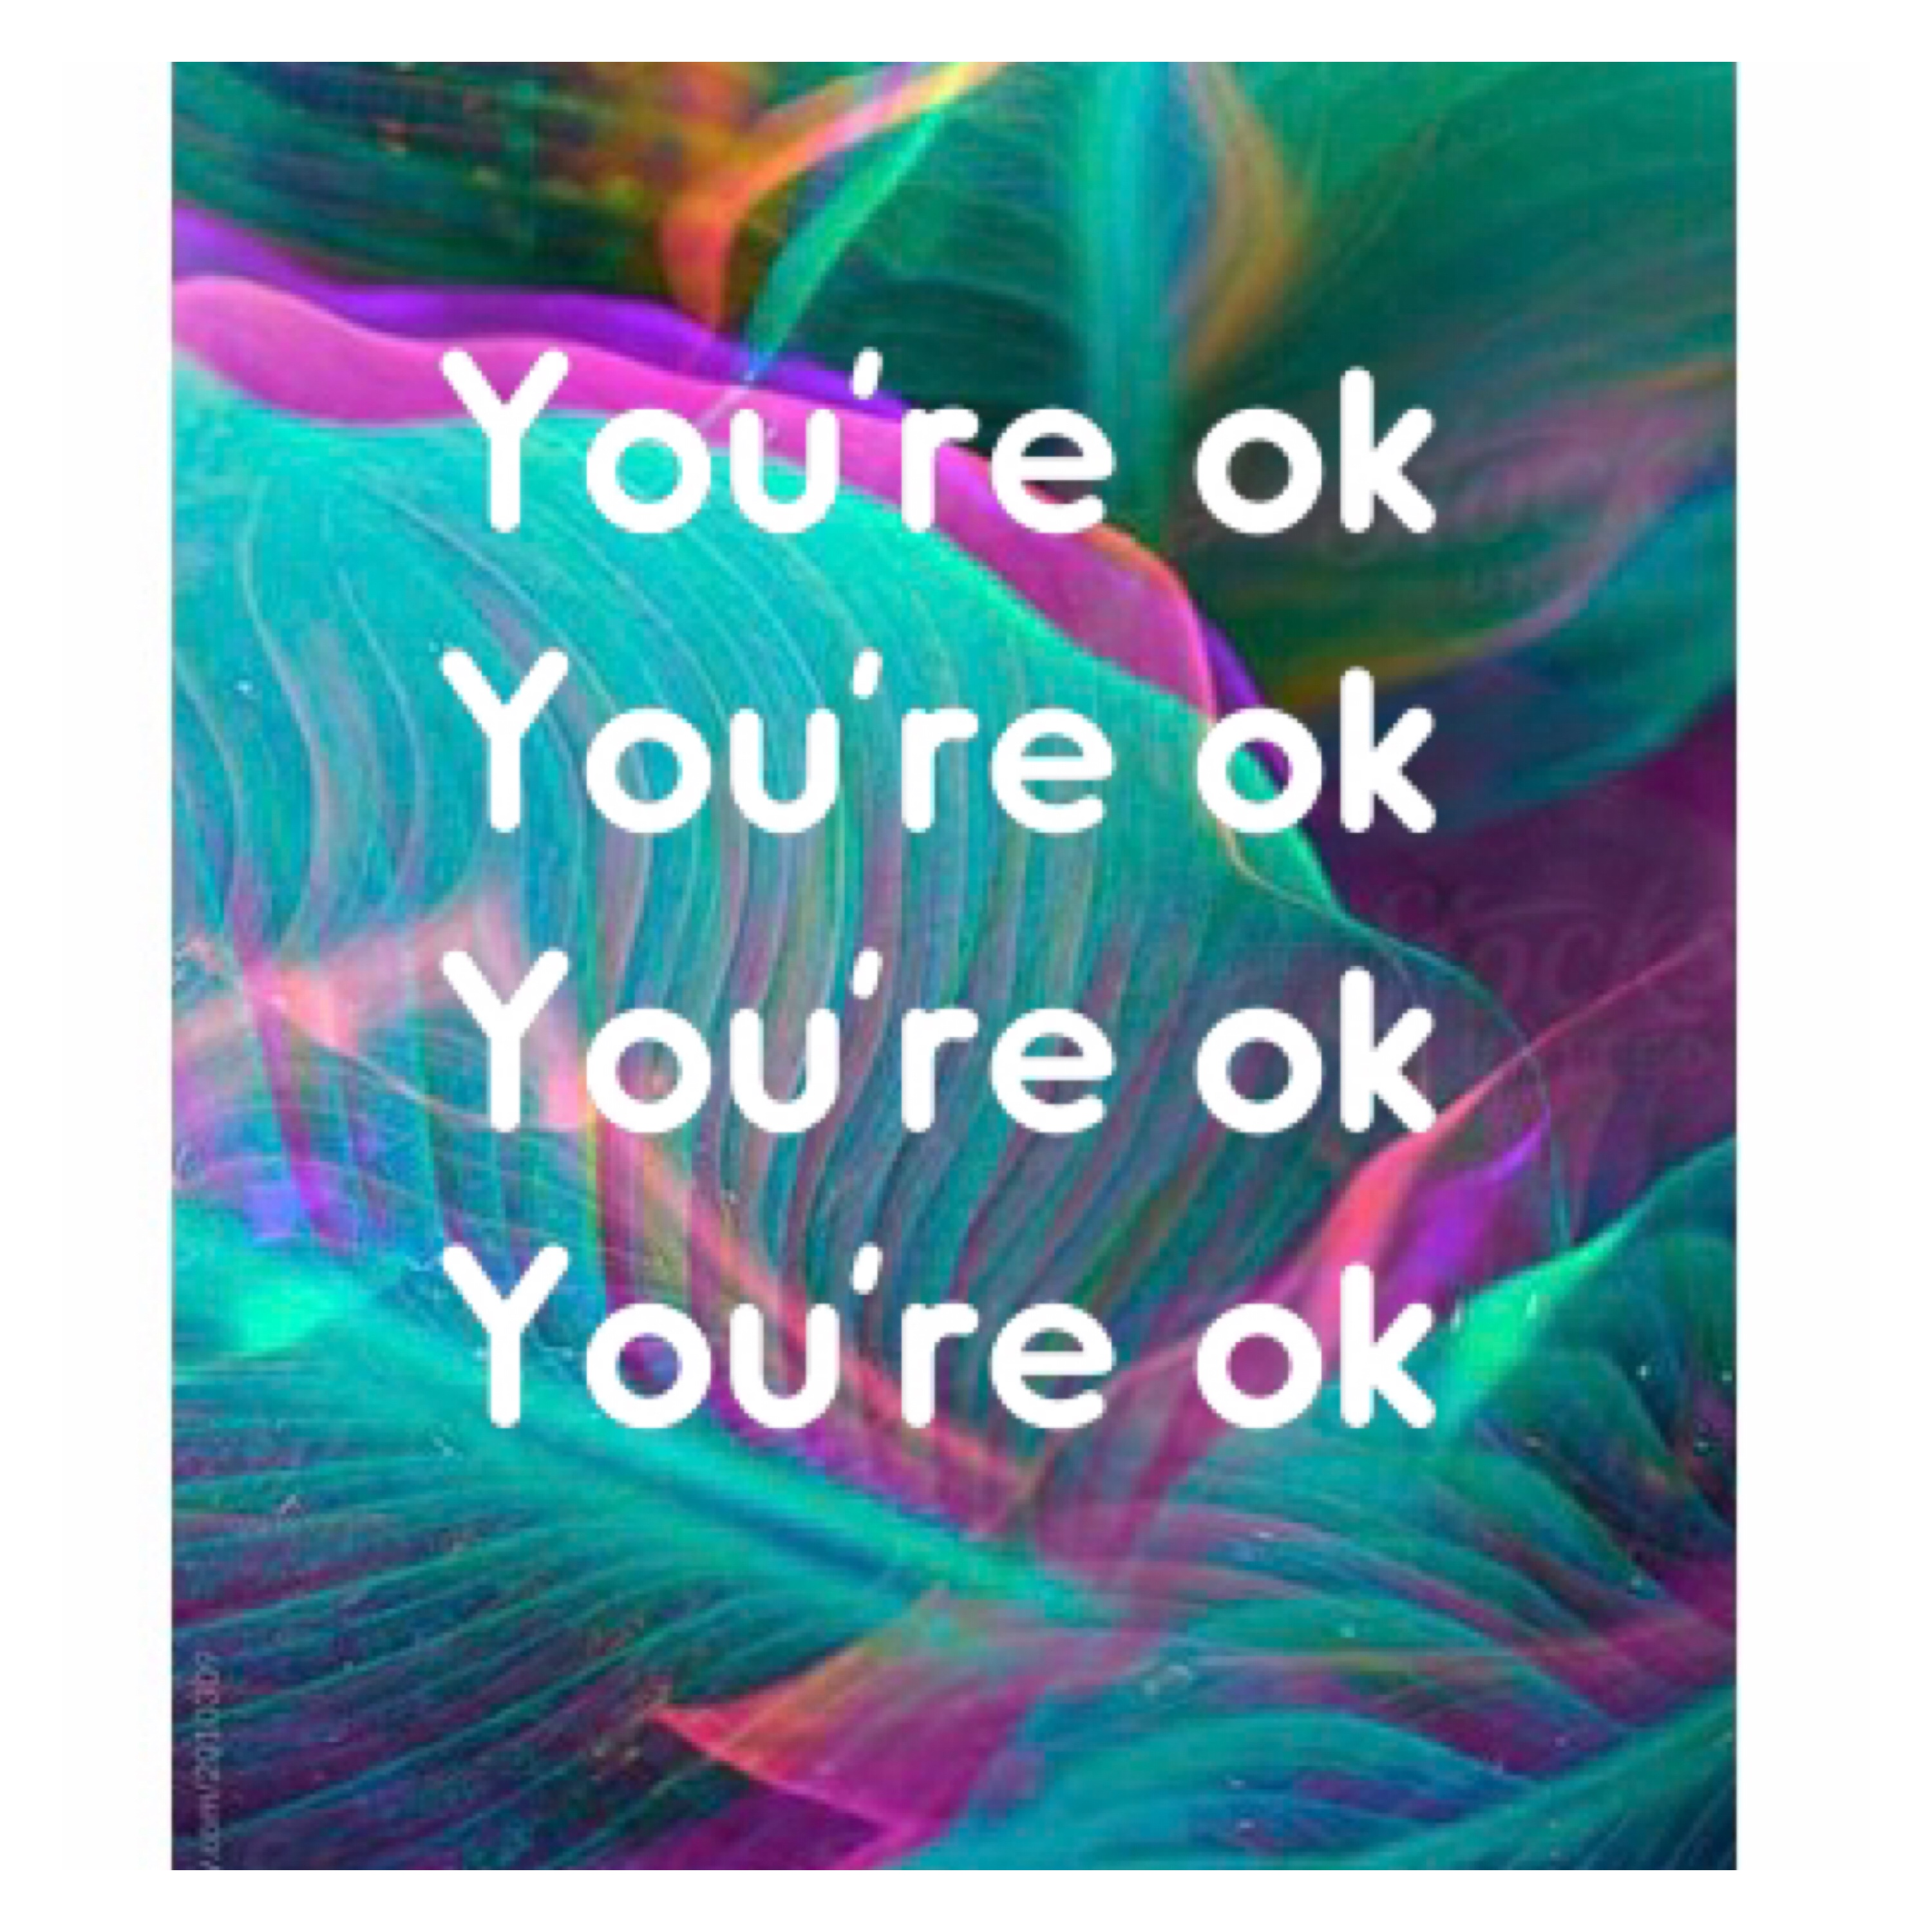 Text 'you're ok' repeated on pink & green swirly background